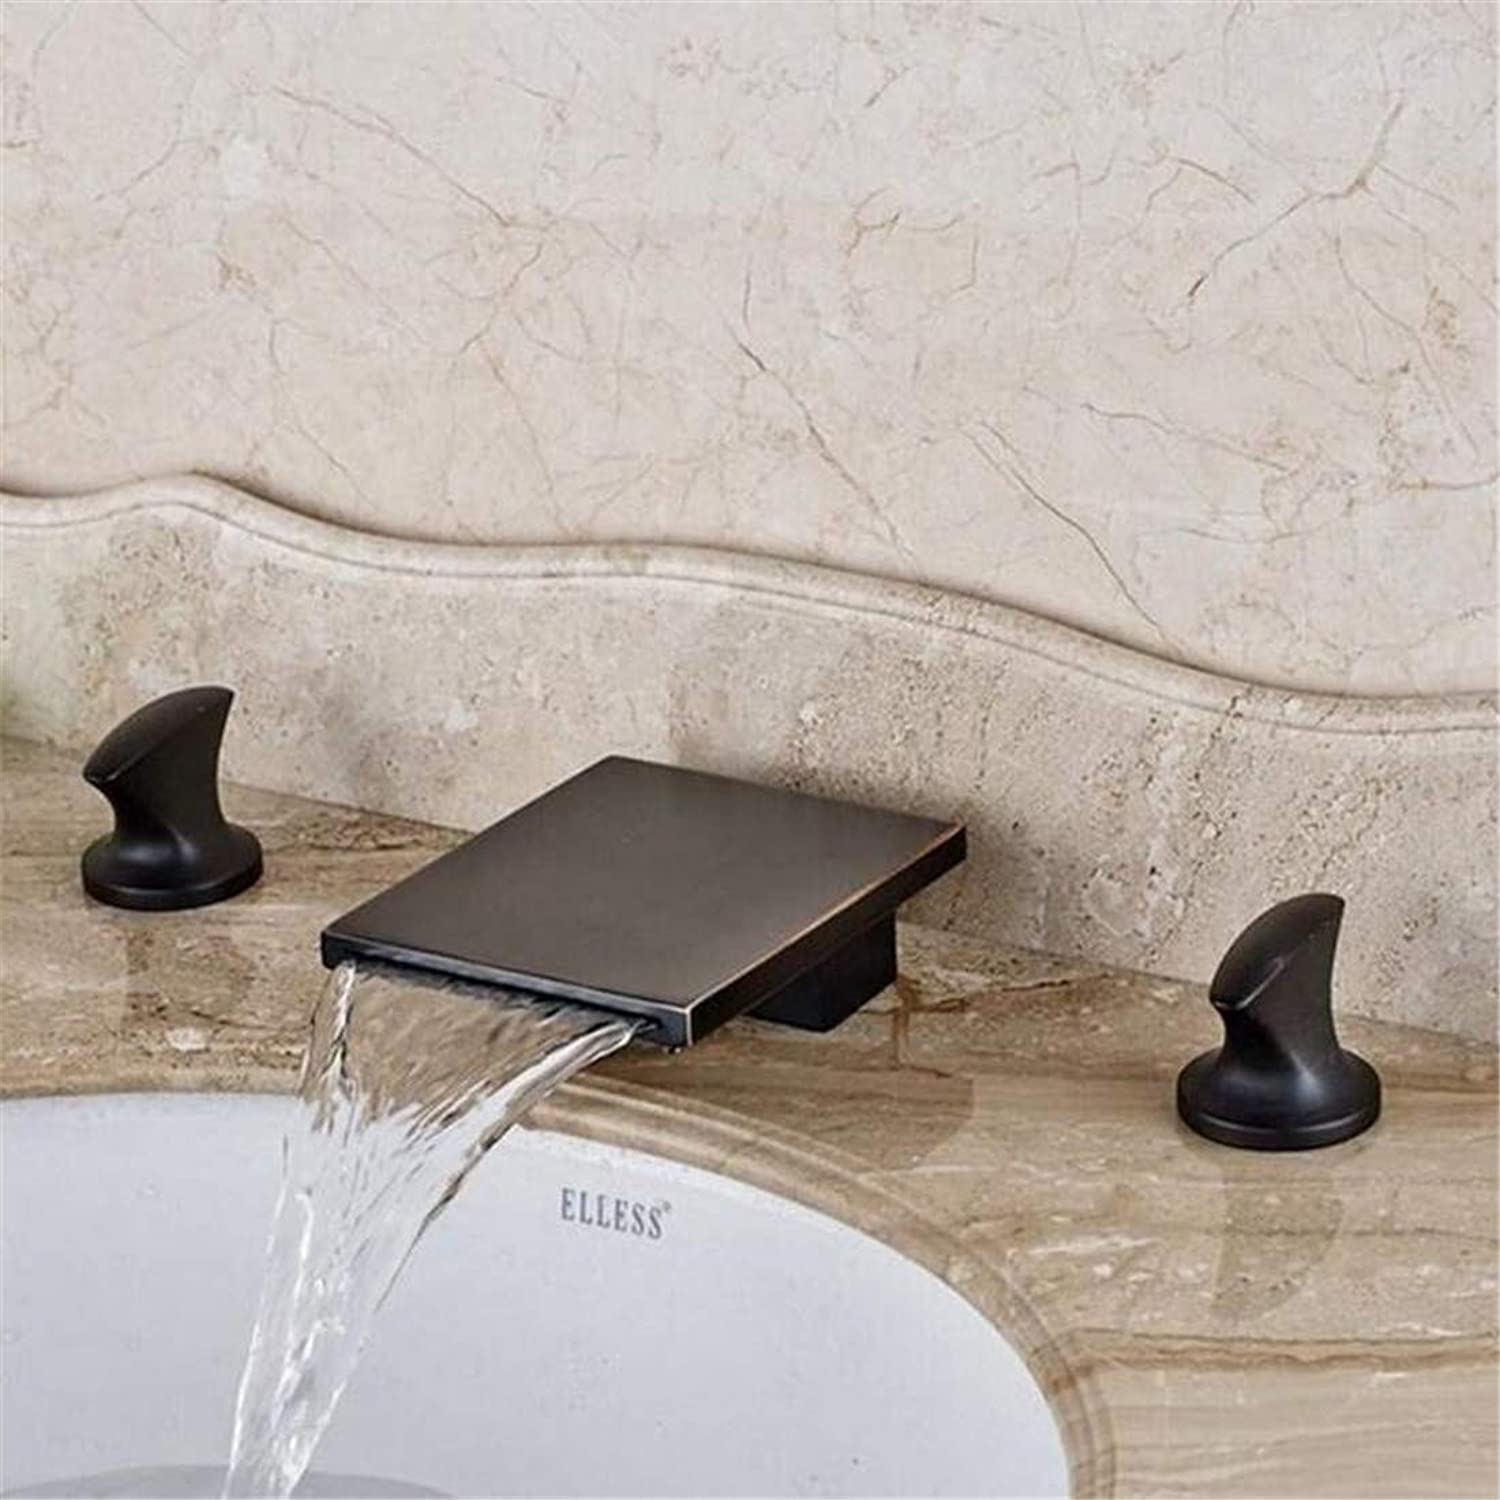 Faucet Kitchen Bathroom Stainless Steel Faucet Faucet Washbasin Mixer Oil Rubbed Bronze Waterfall Square Spout Bathroom Basin Faucet Dual Handle Mixer